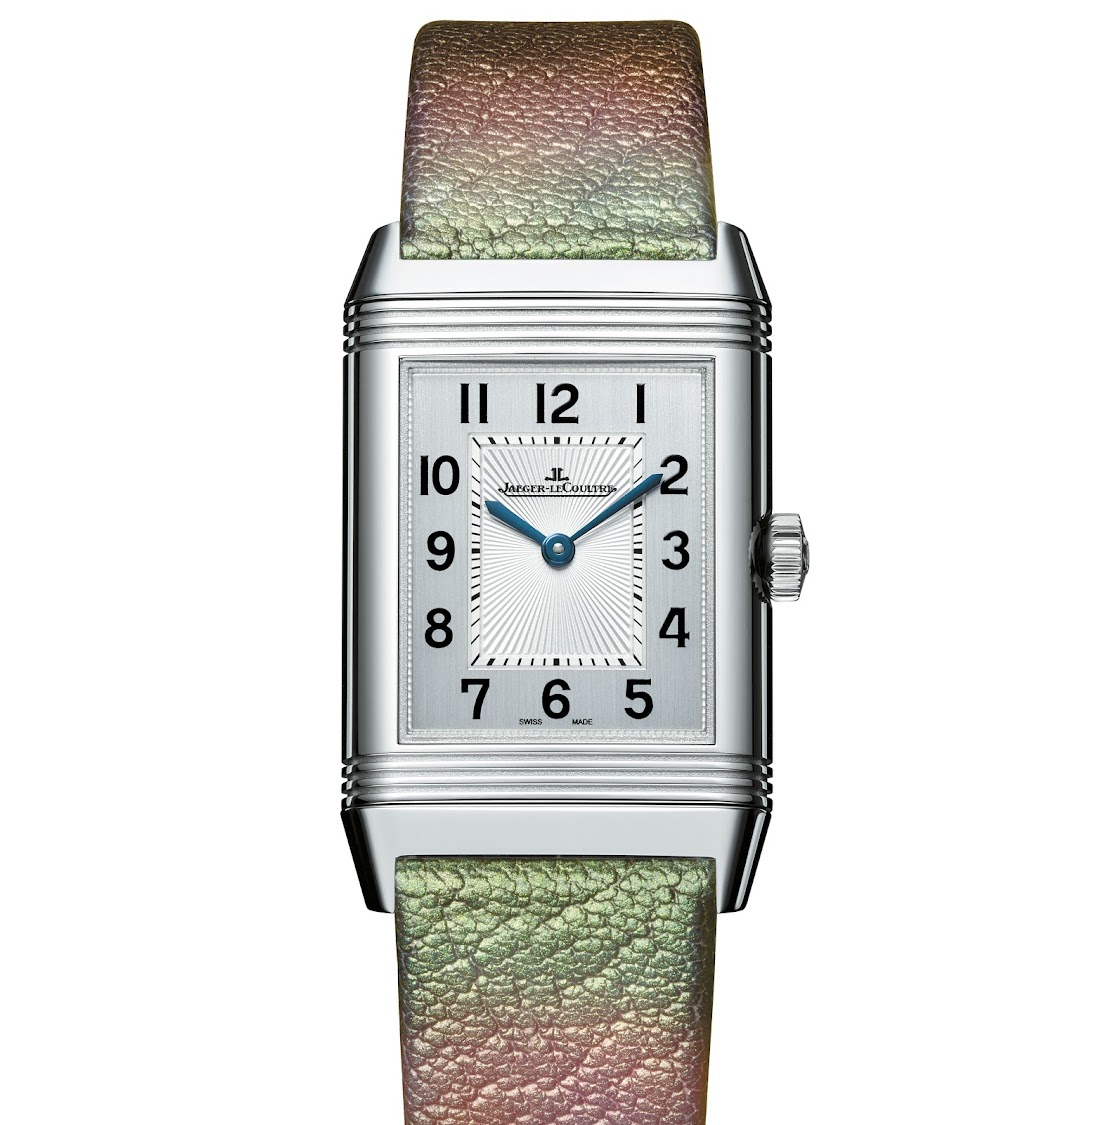 Jaeger-LeCoultre Reverso by Christian Louboutin, price on request